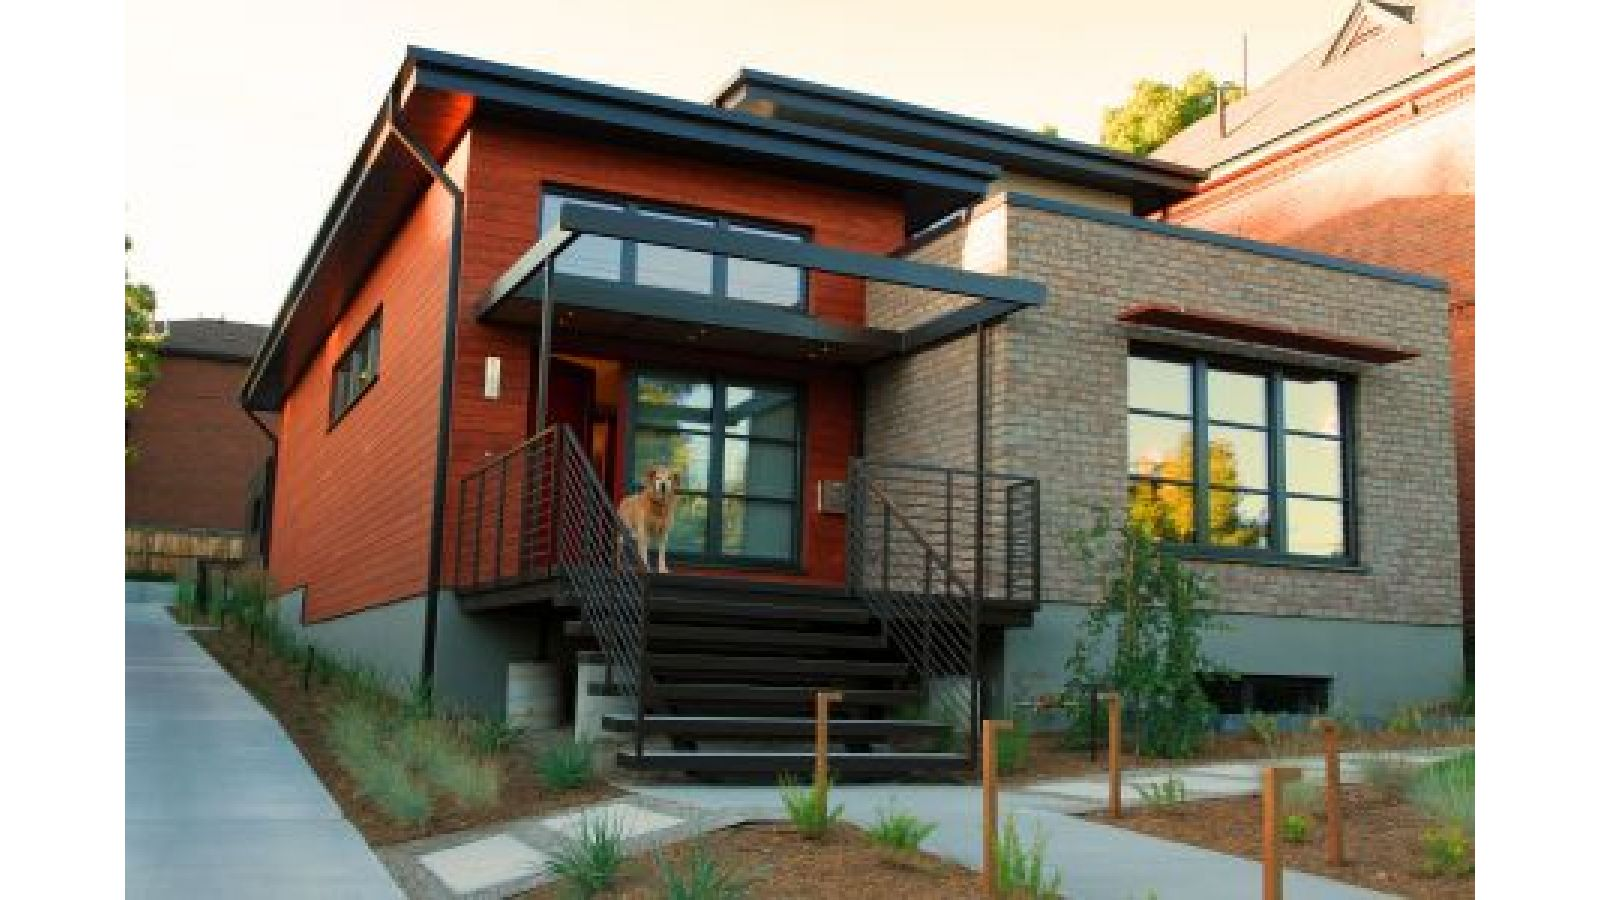 Ruby House - Environmental Benefits for a Smart Home